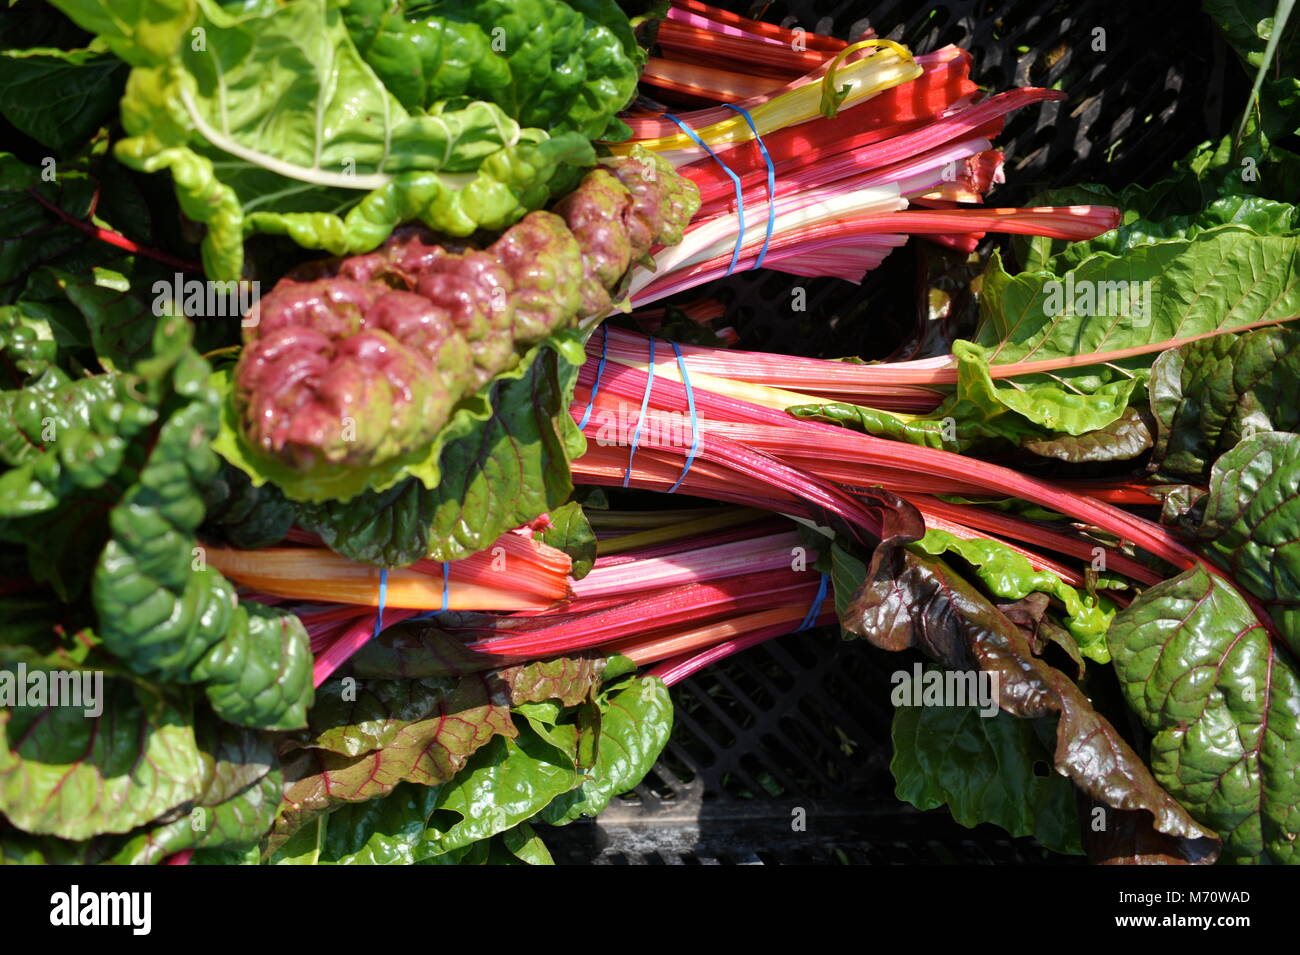 Farm fresh Swiss chard harvested and grouped with rubber bands, in Wisconsin, USA - Stock Image